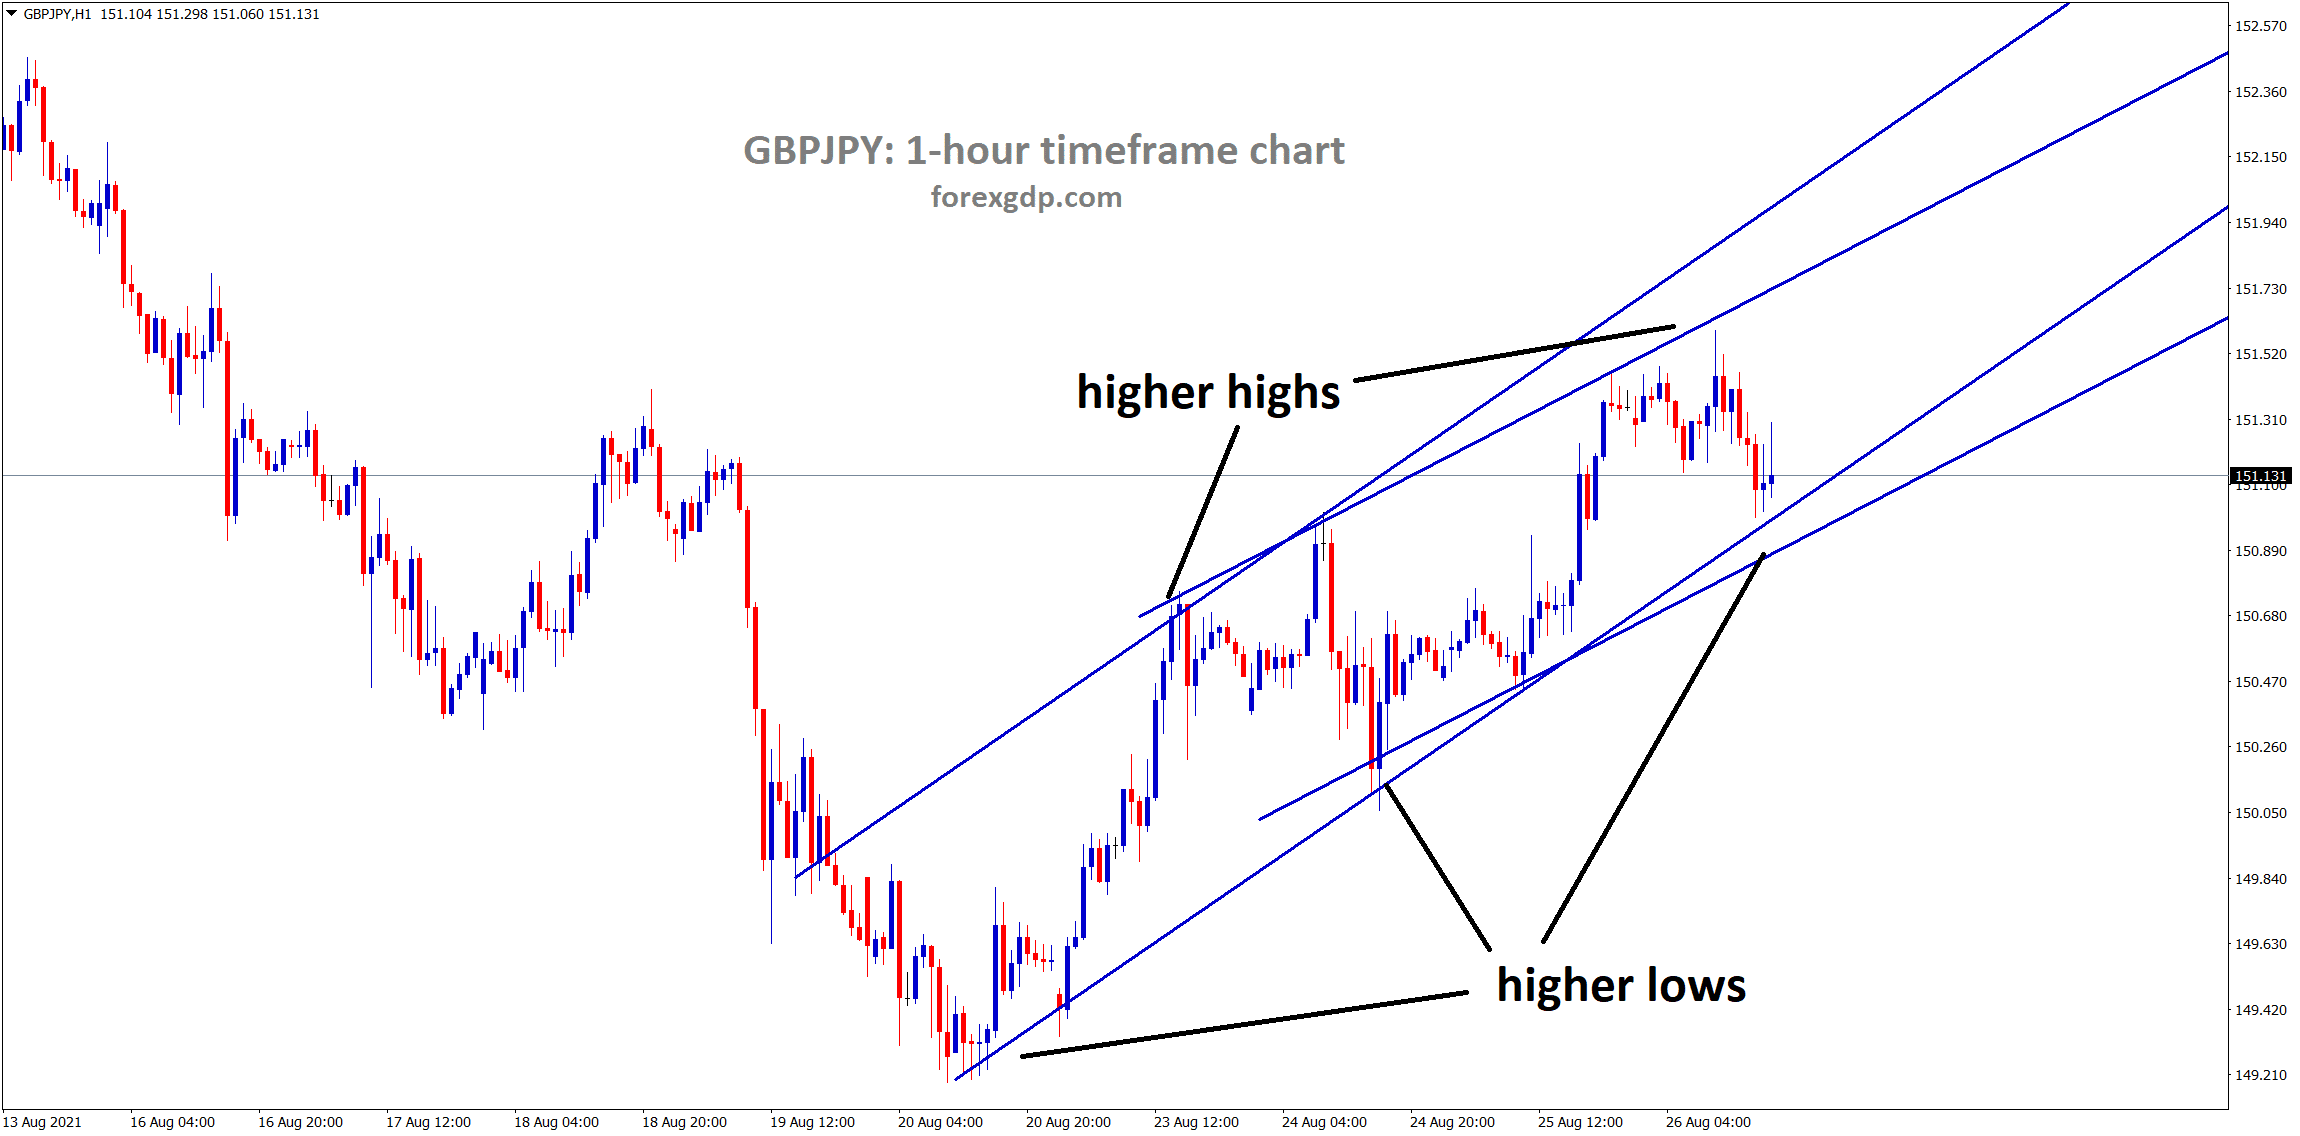 GBPJPY is moving in an uptrend line between the channel chart pattern